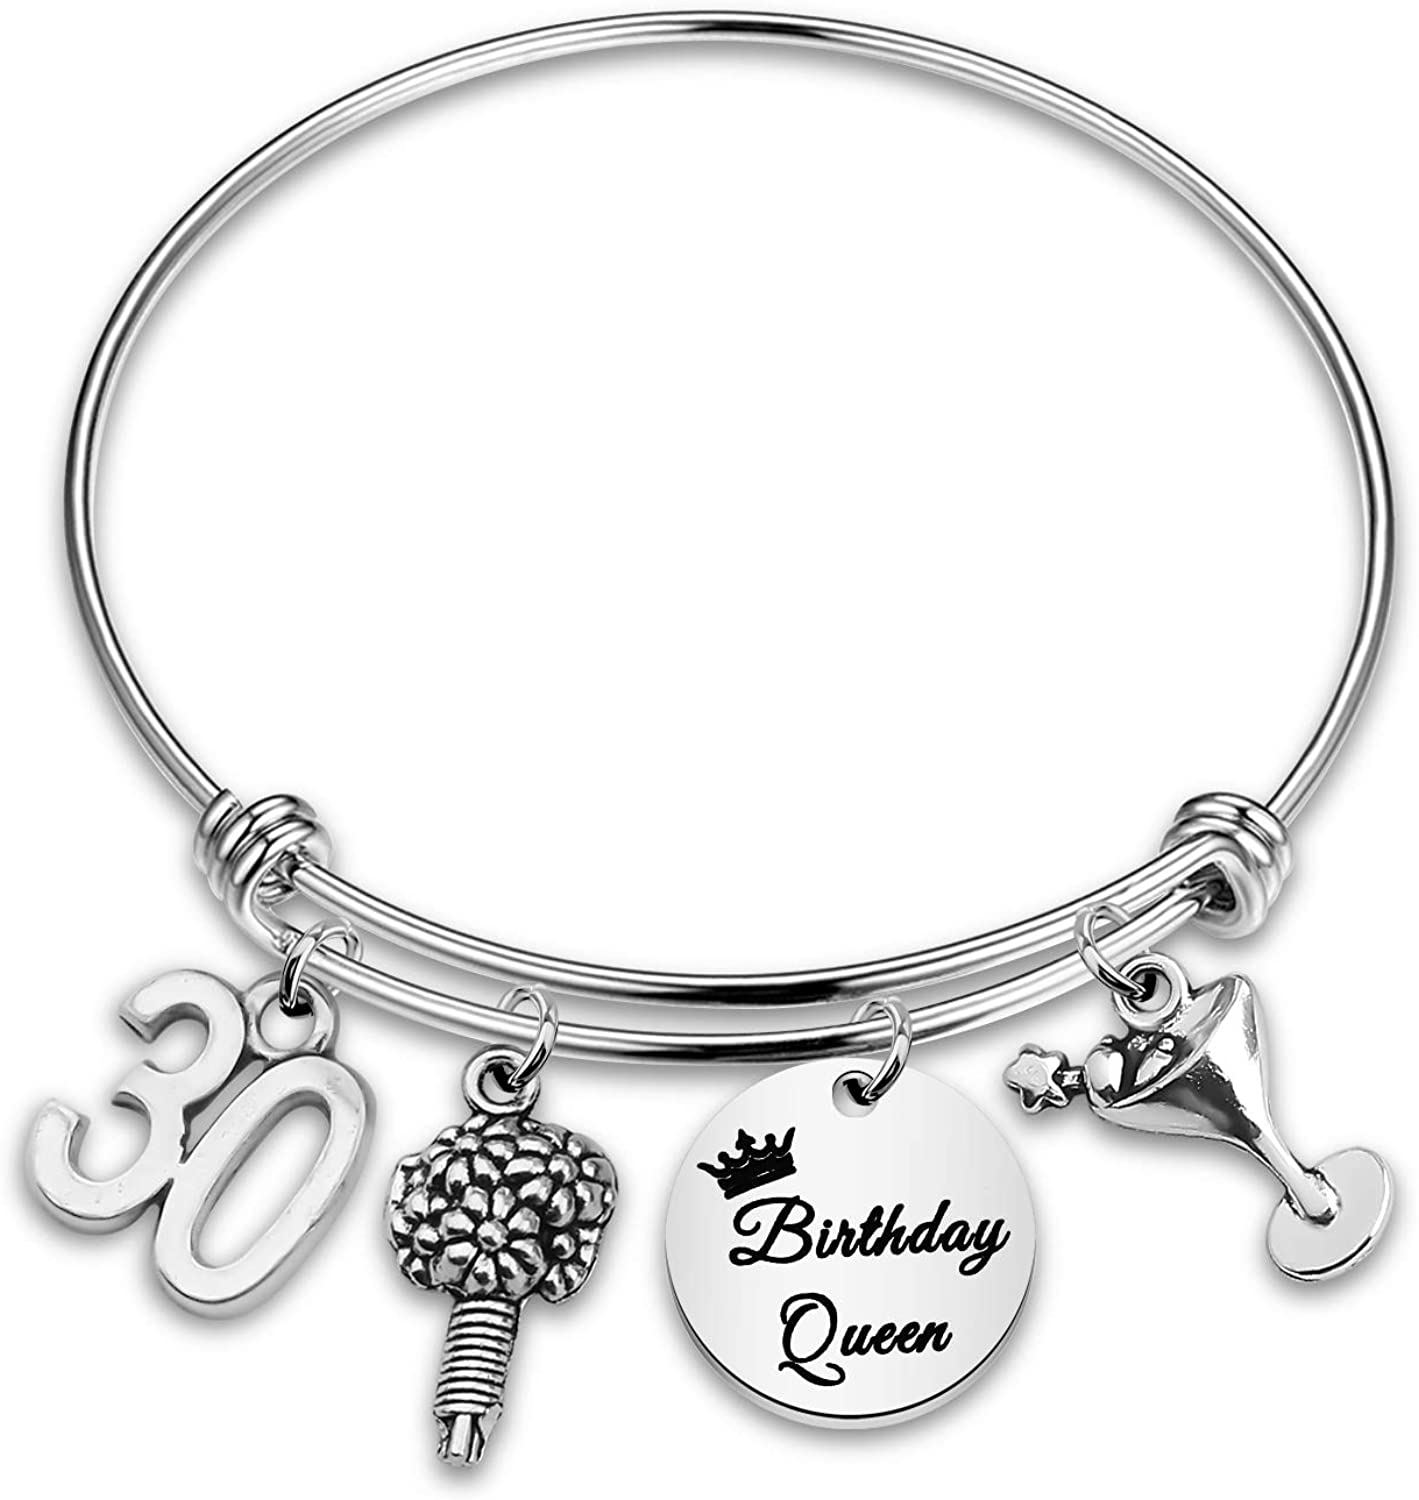 CENWA Birthday Gift Birthday Queen Bracelet 10th 12th 13th Sweet 16th 18th 21st 30th Expandable Bangle Gift for Women Girls